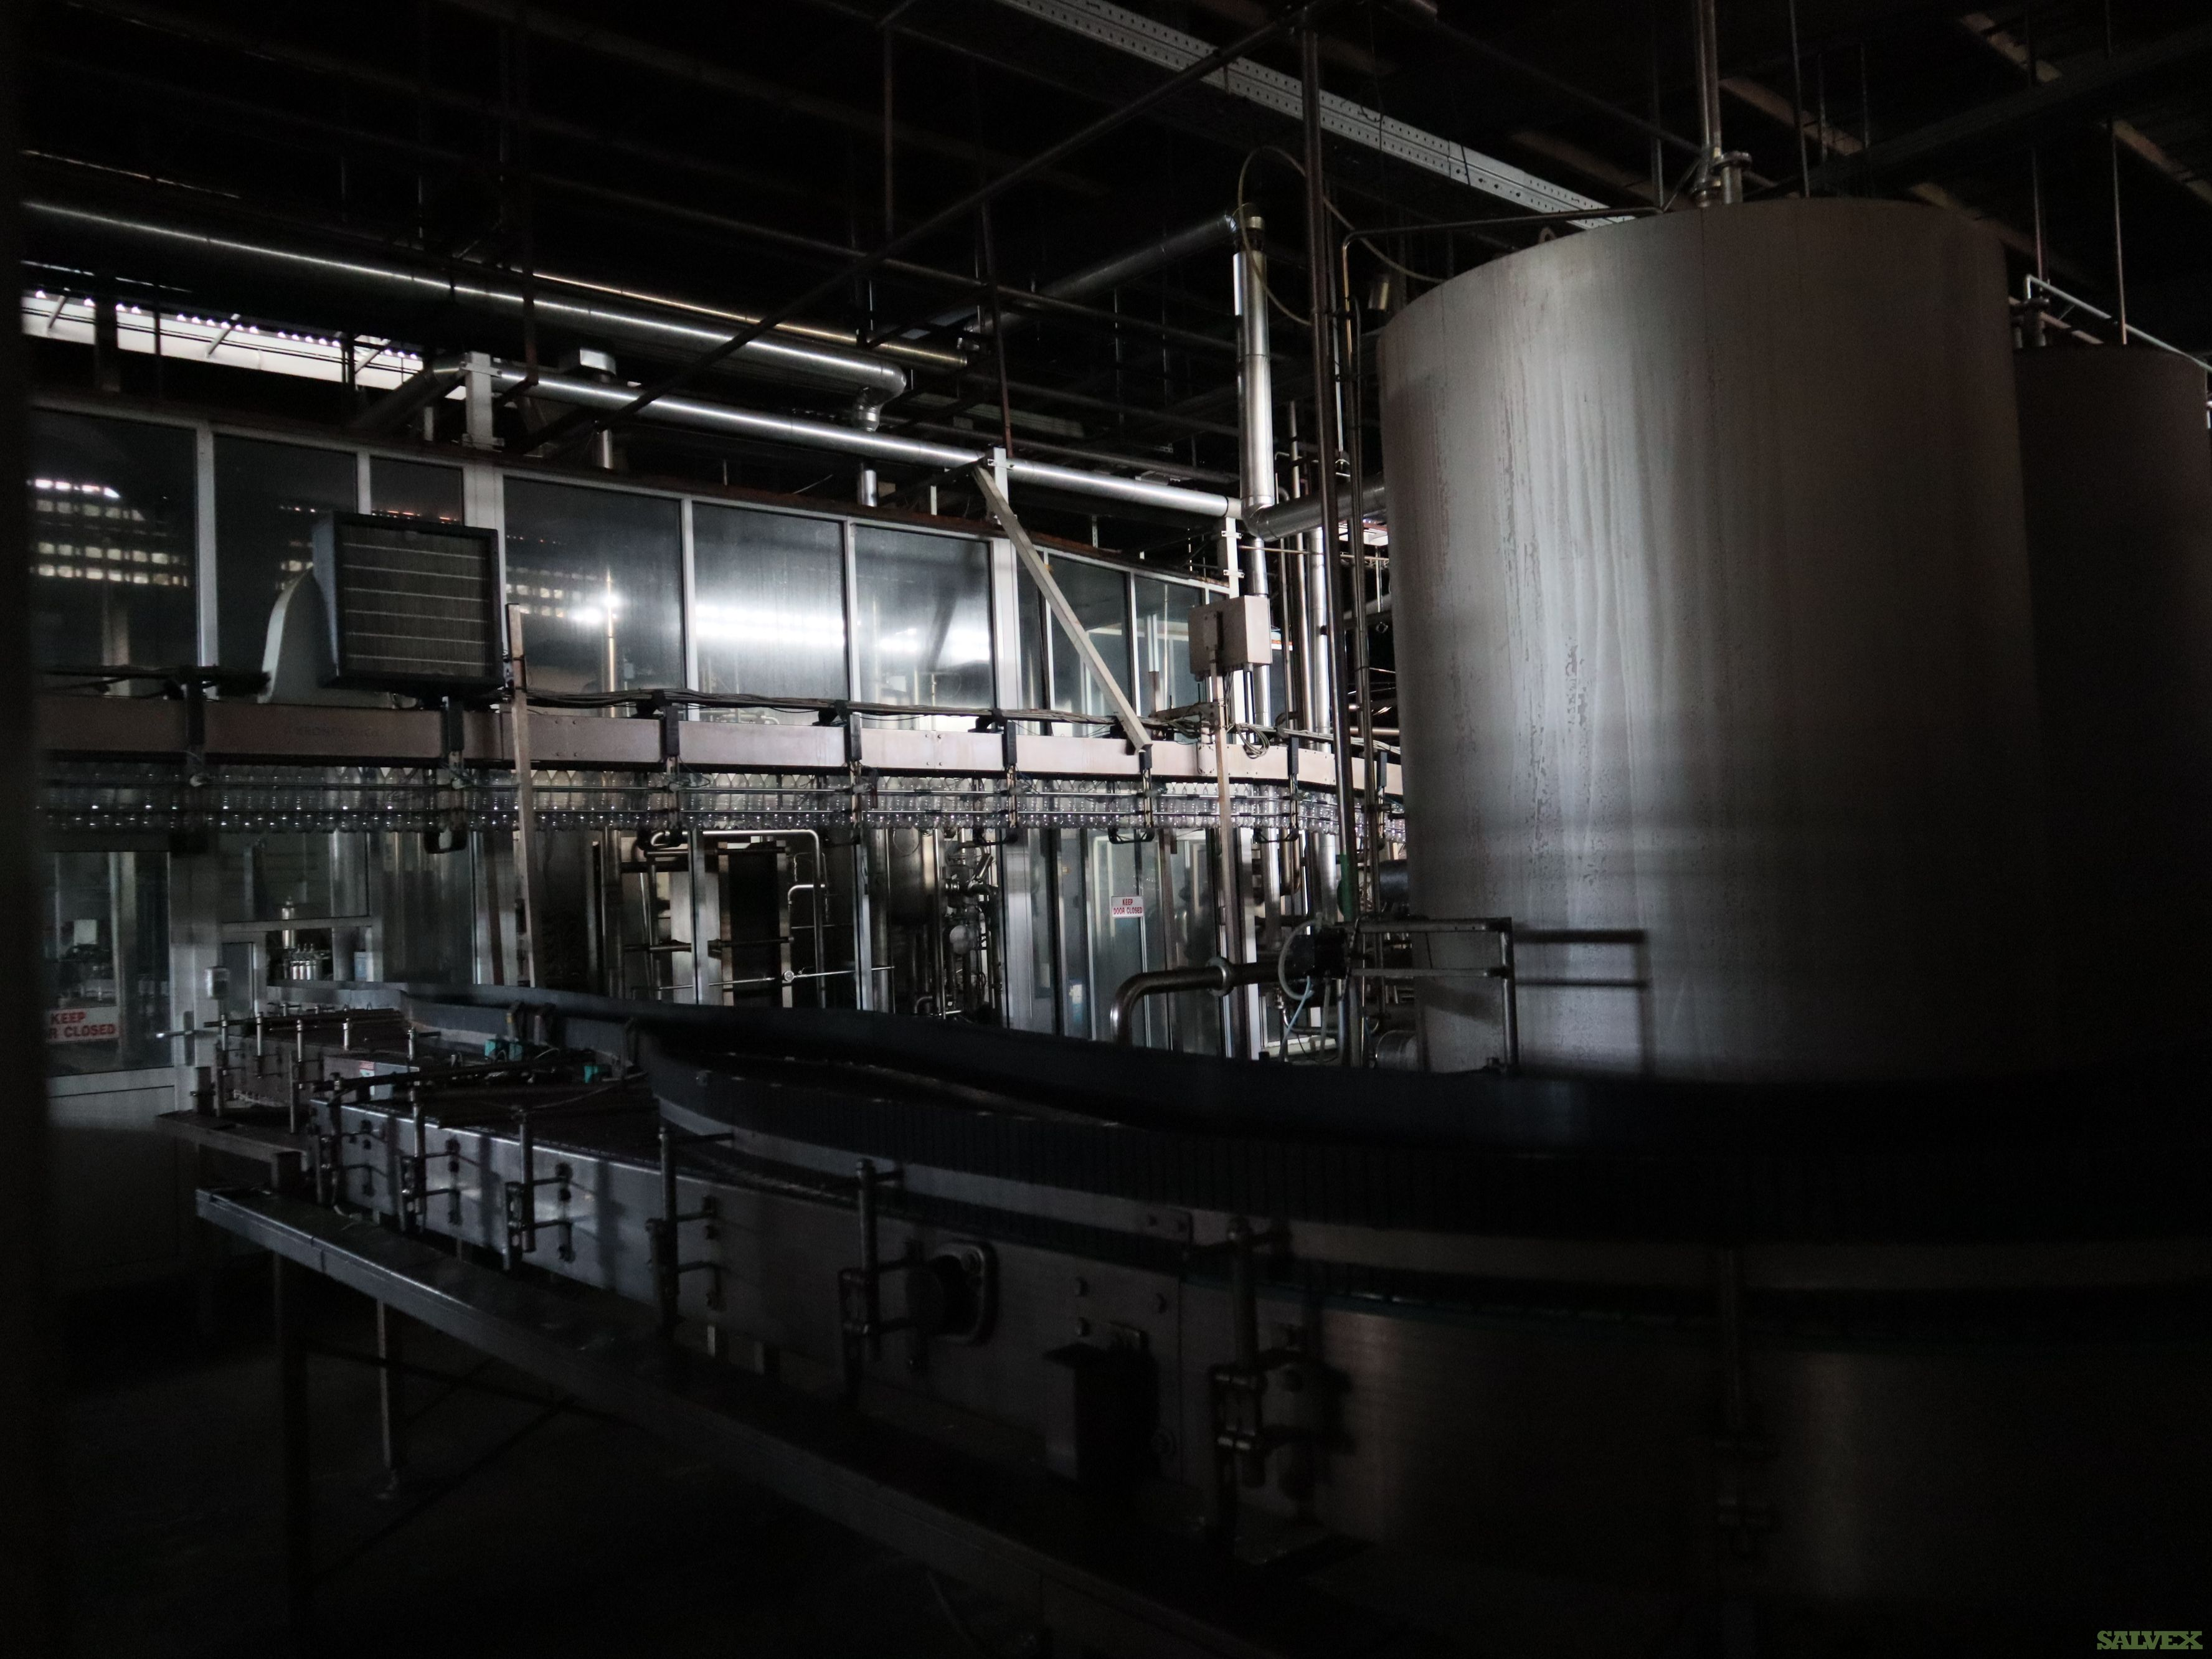 Krones Bottling Lines and Related Utilities - Damaged (2 units)